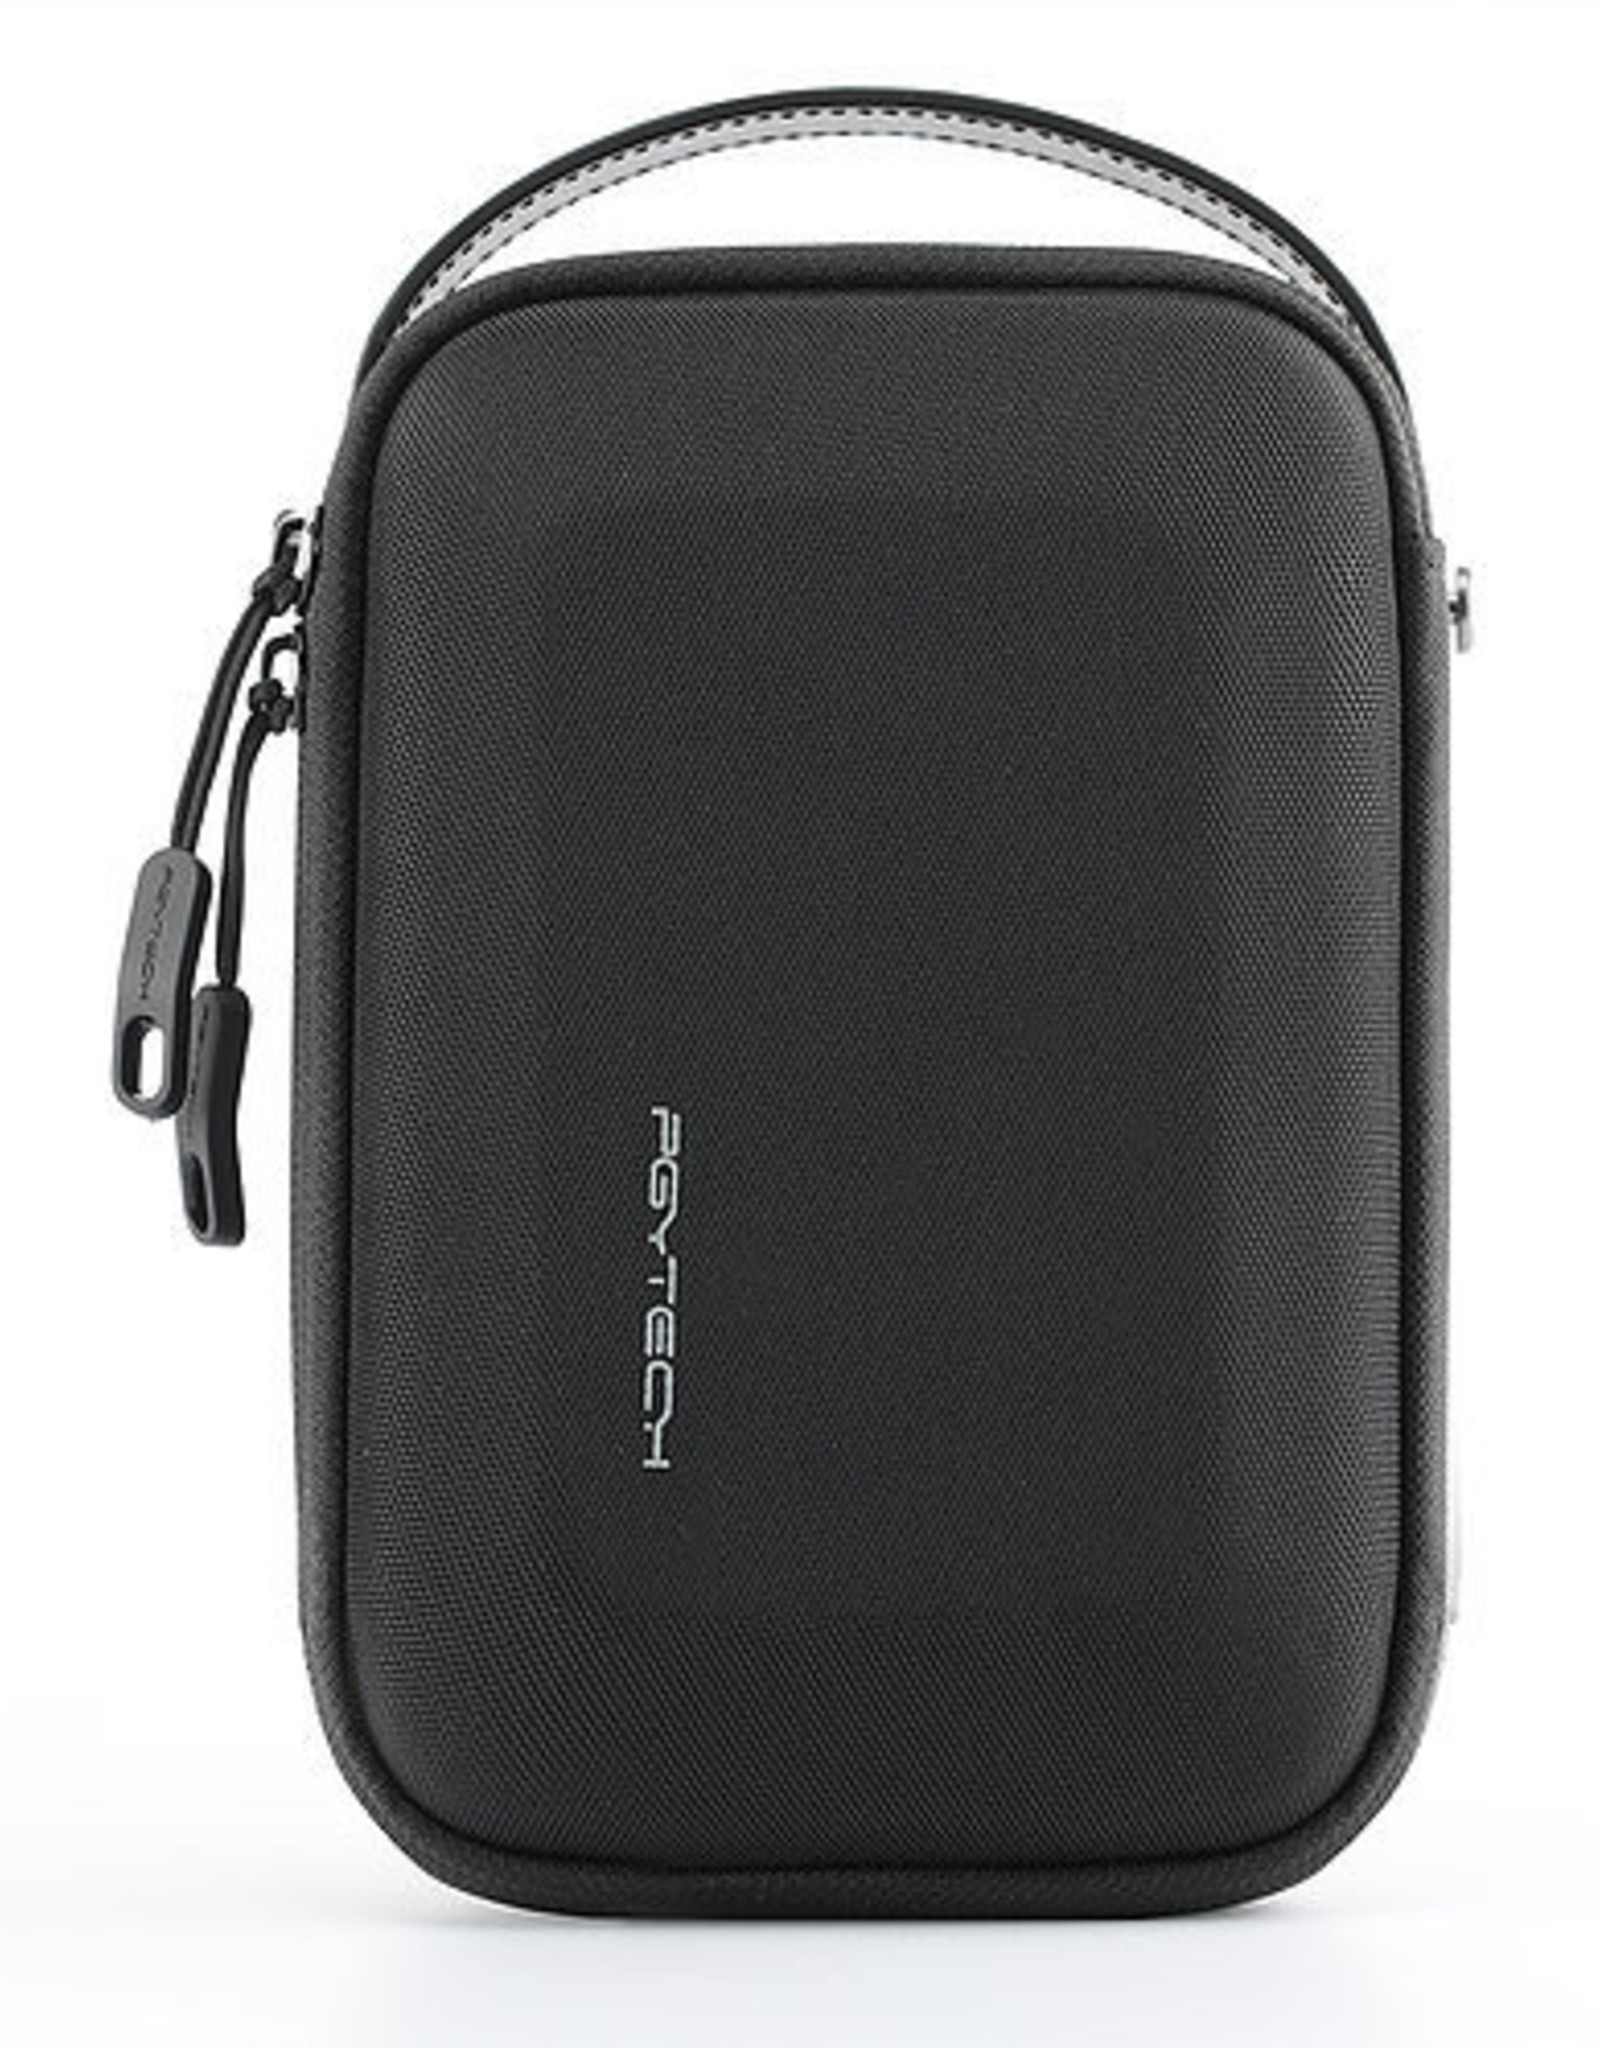 PGYTECH Mini Carrying Case for Osmo Pocket/Action